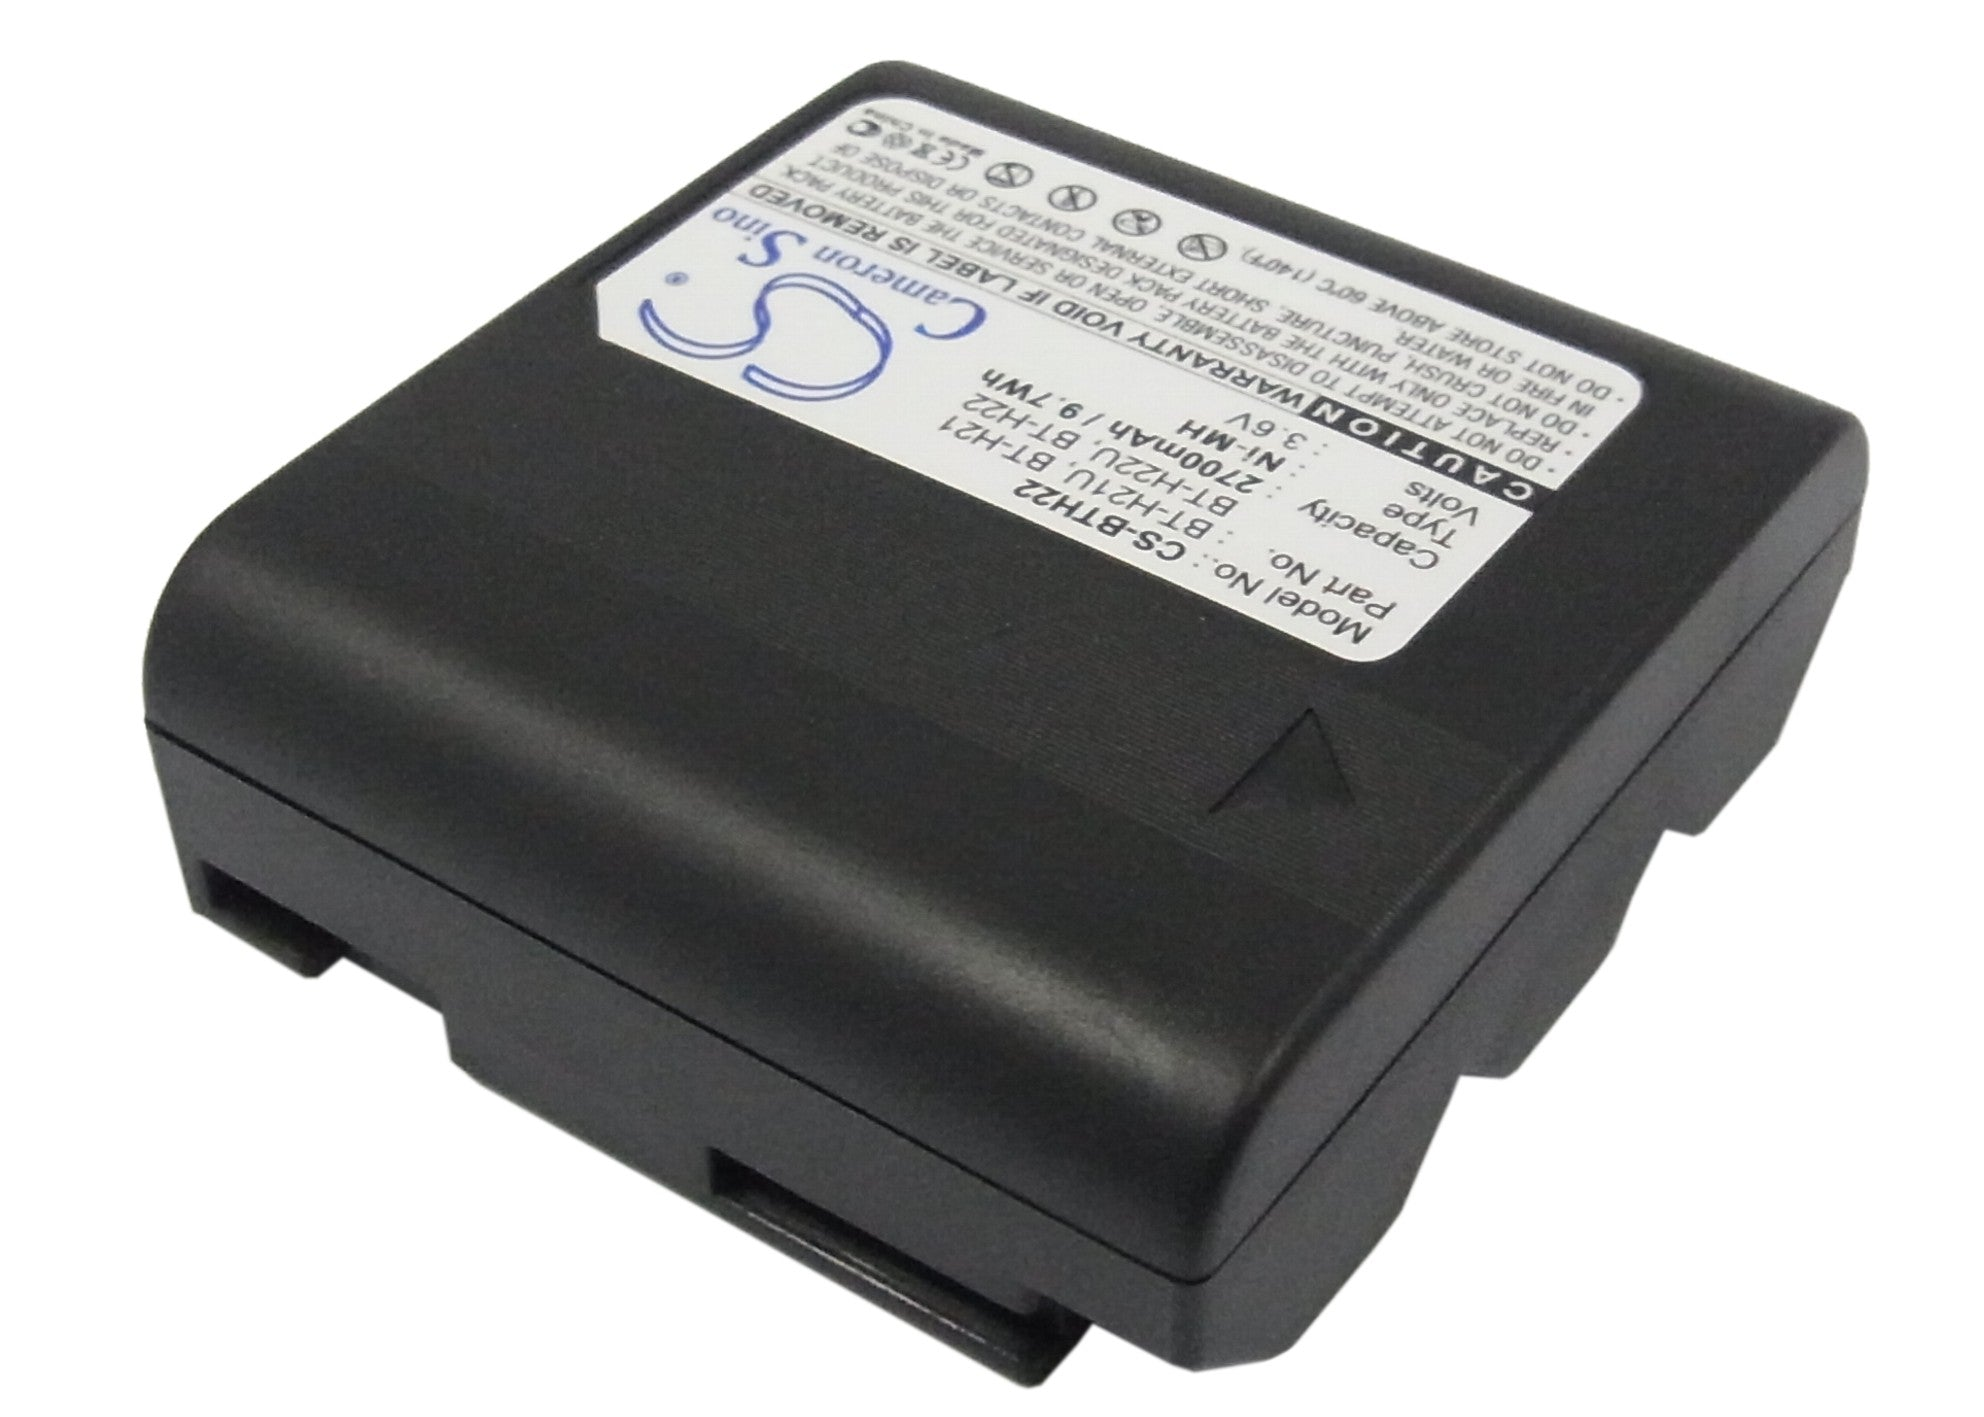 Replacement Battery for Sharp VL-8 VL-A10H VL-A111H VL-A111 VL-A10S VL-8888 VL-A10 VL-A10U VL-A111S 2700mAh VL-A10E VL-A110U